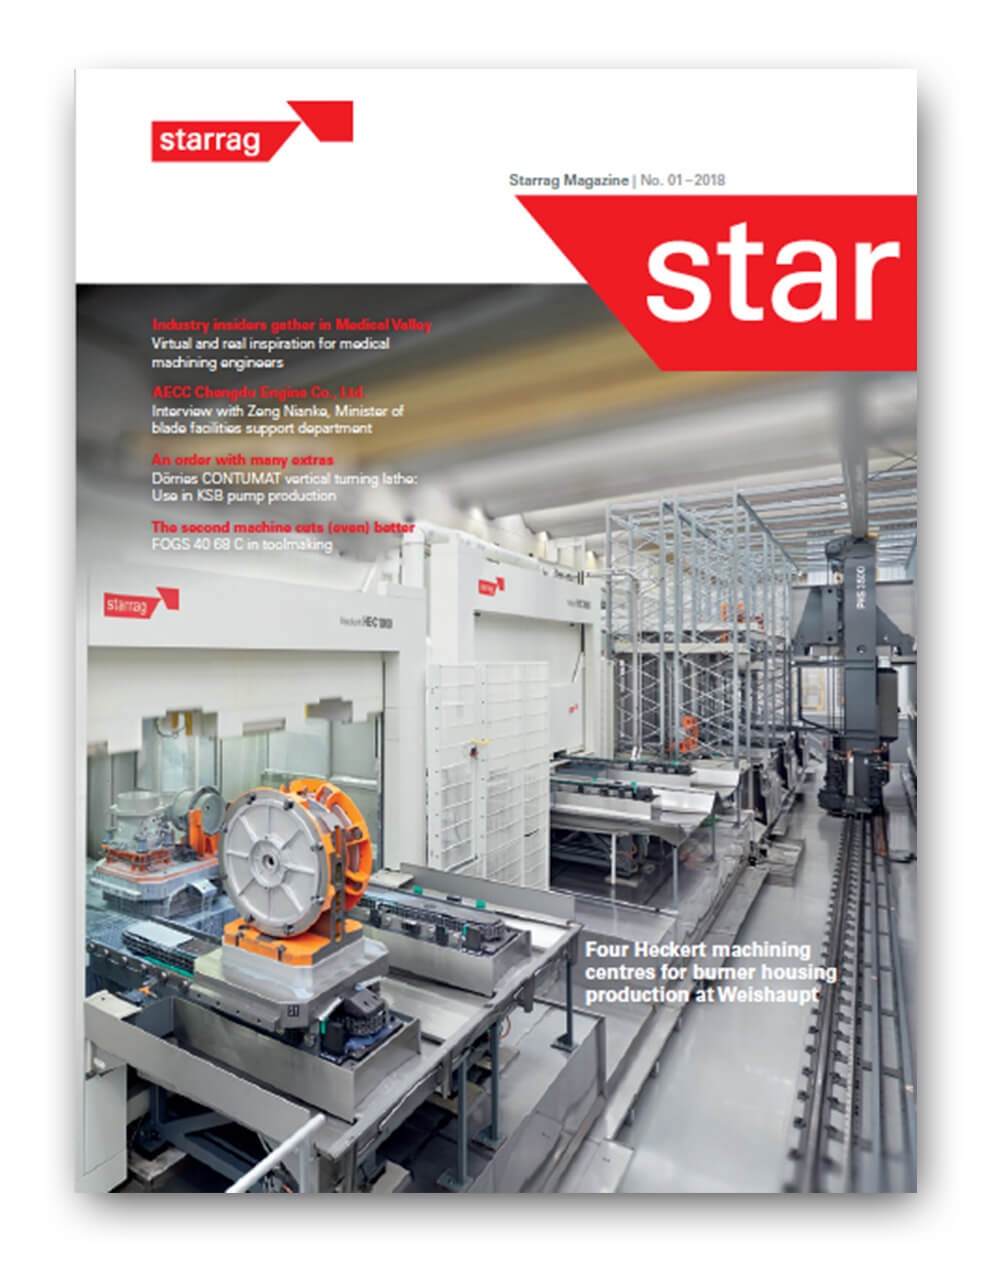 Cover Story: Four Heckert machining centres for burner housing production at Weishaupt